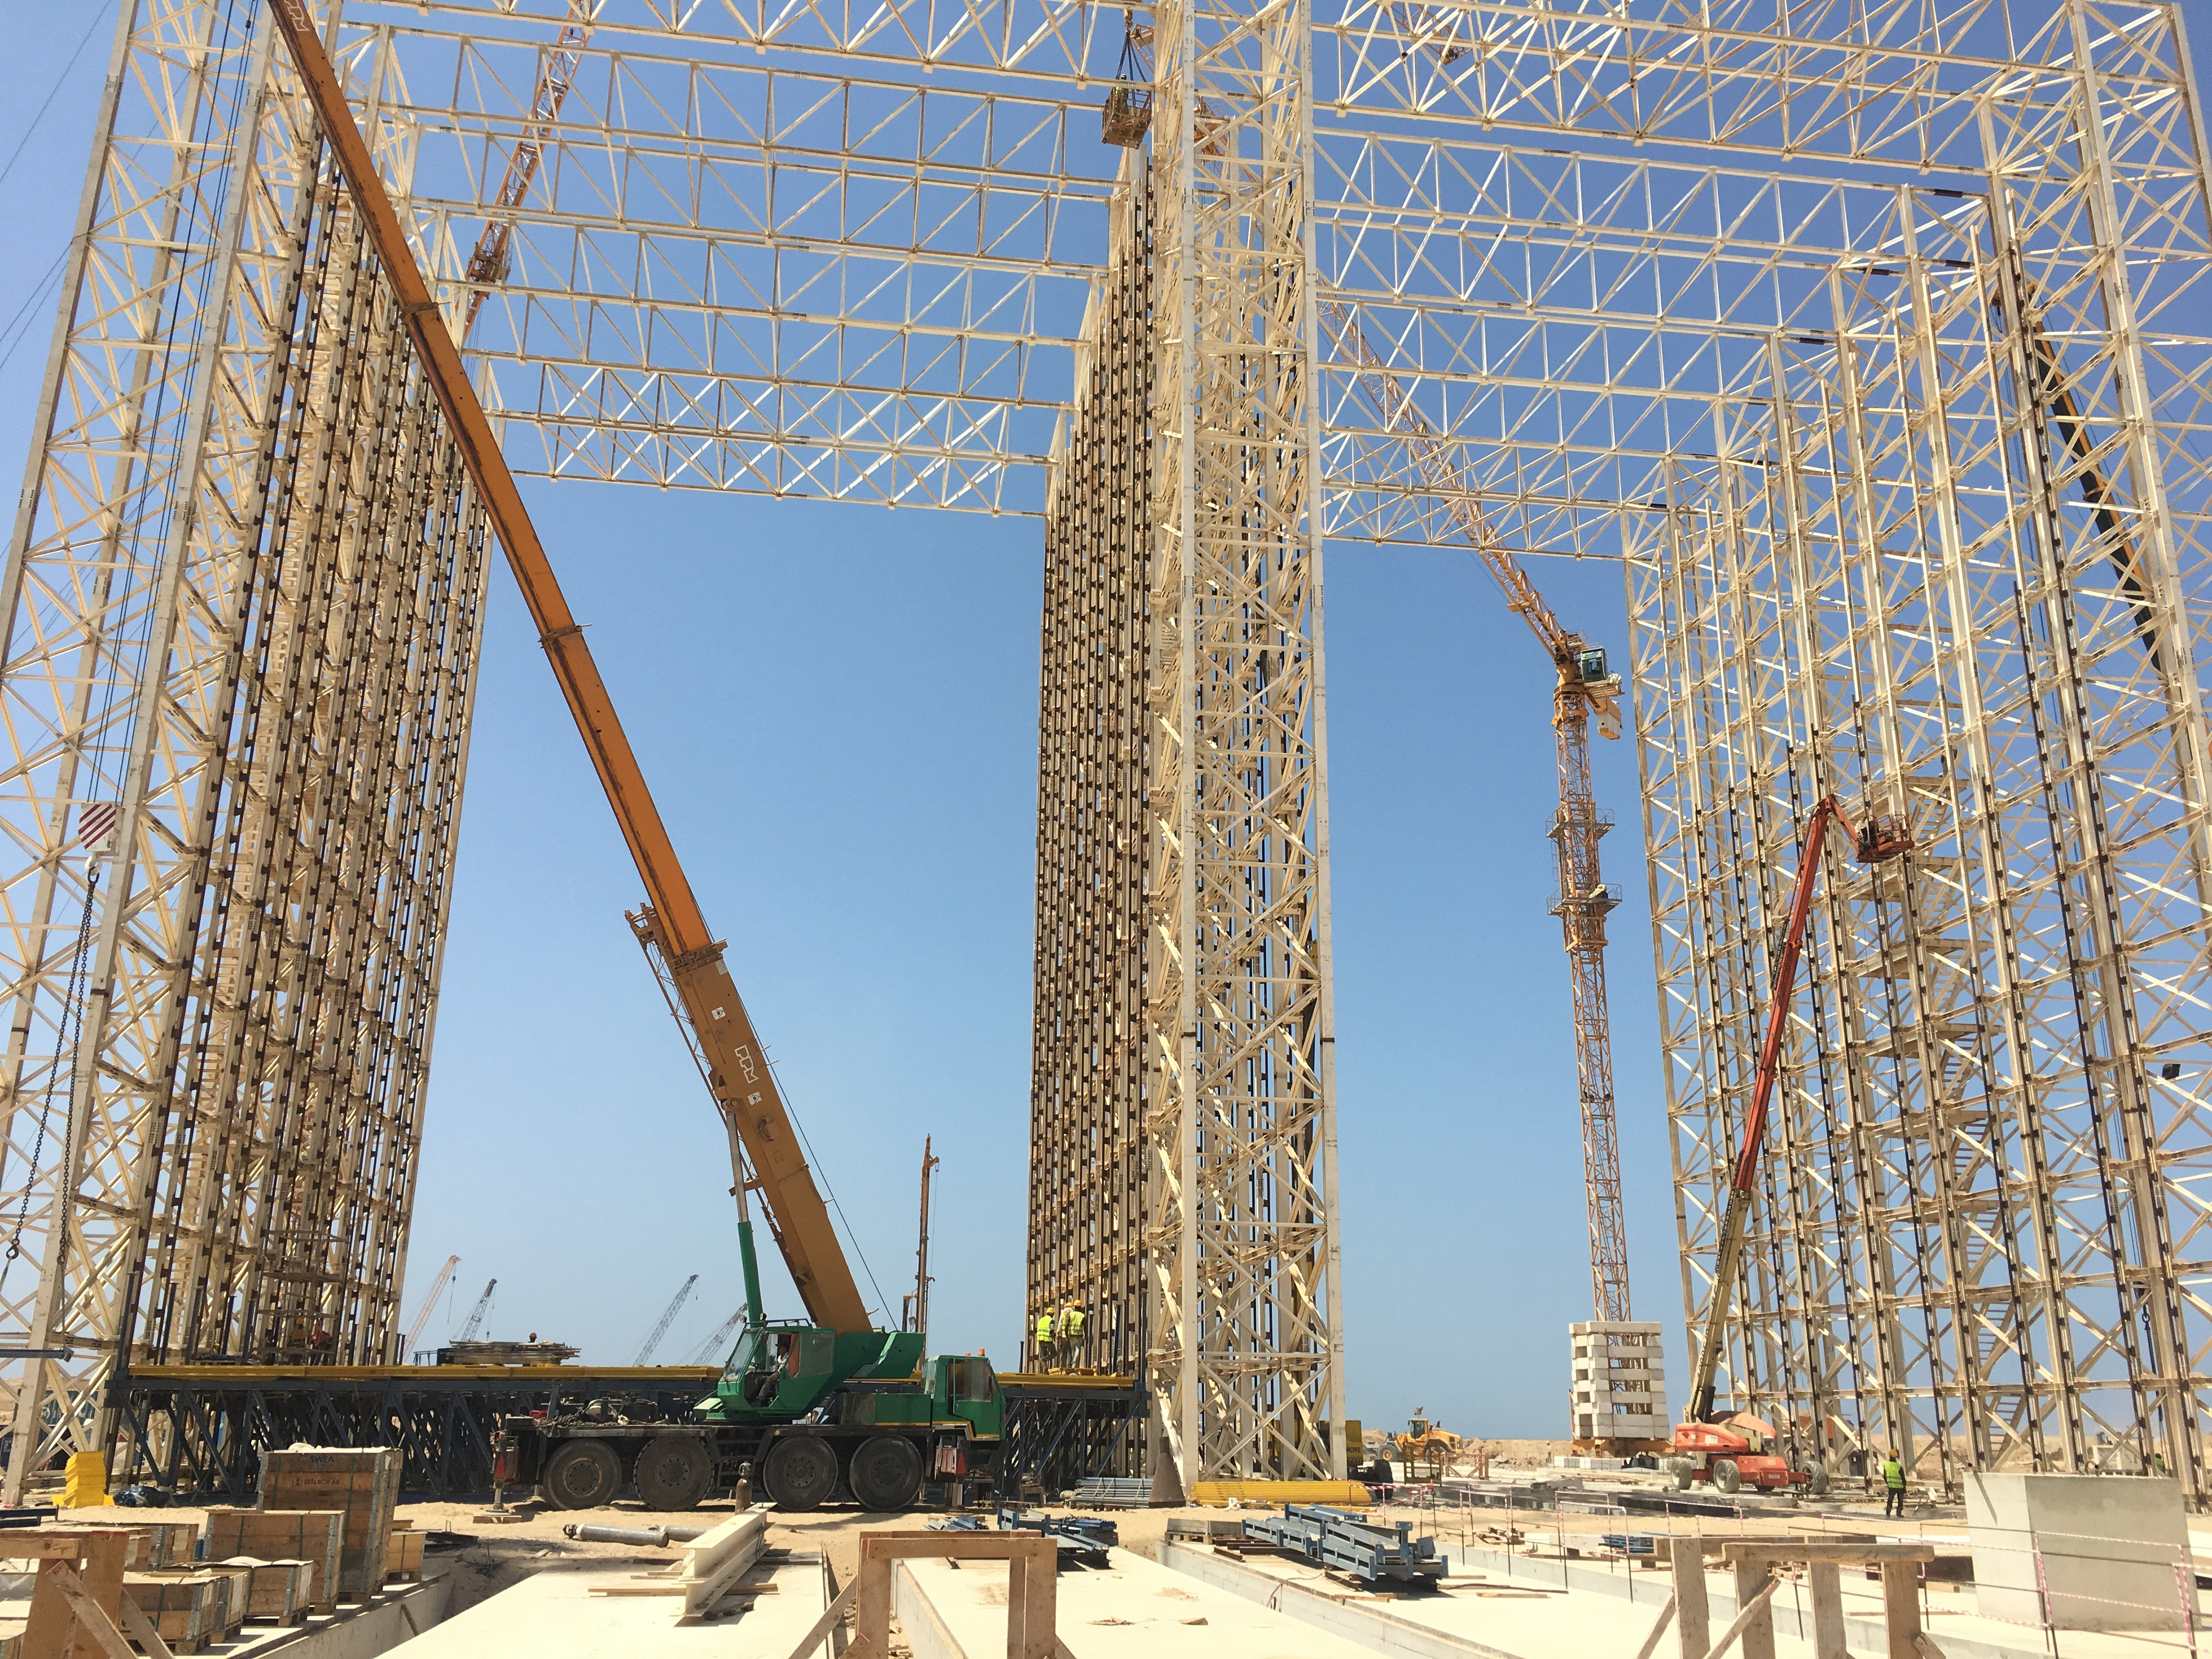 Nador West Med Caisson Project, Morocco - bygging uddemann